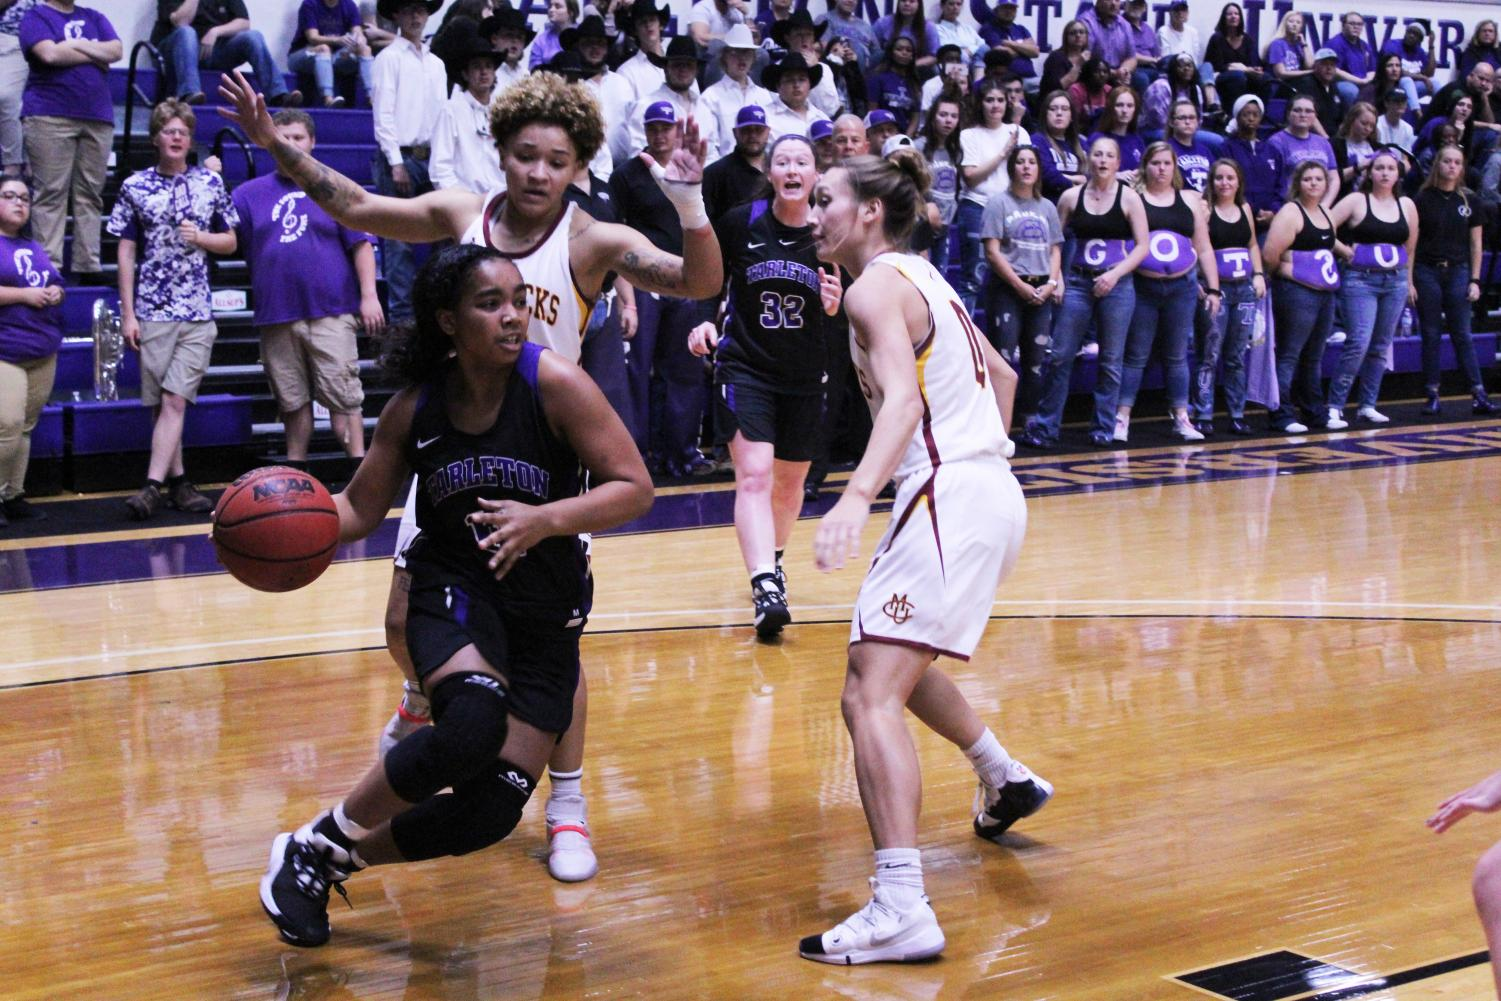 Jasmine Bailey dribbling passed defenders in Tarleton's game against Colorado Mesa on Nov. 9, 2019.